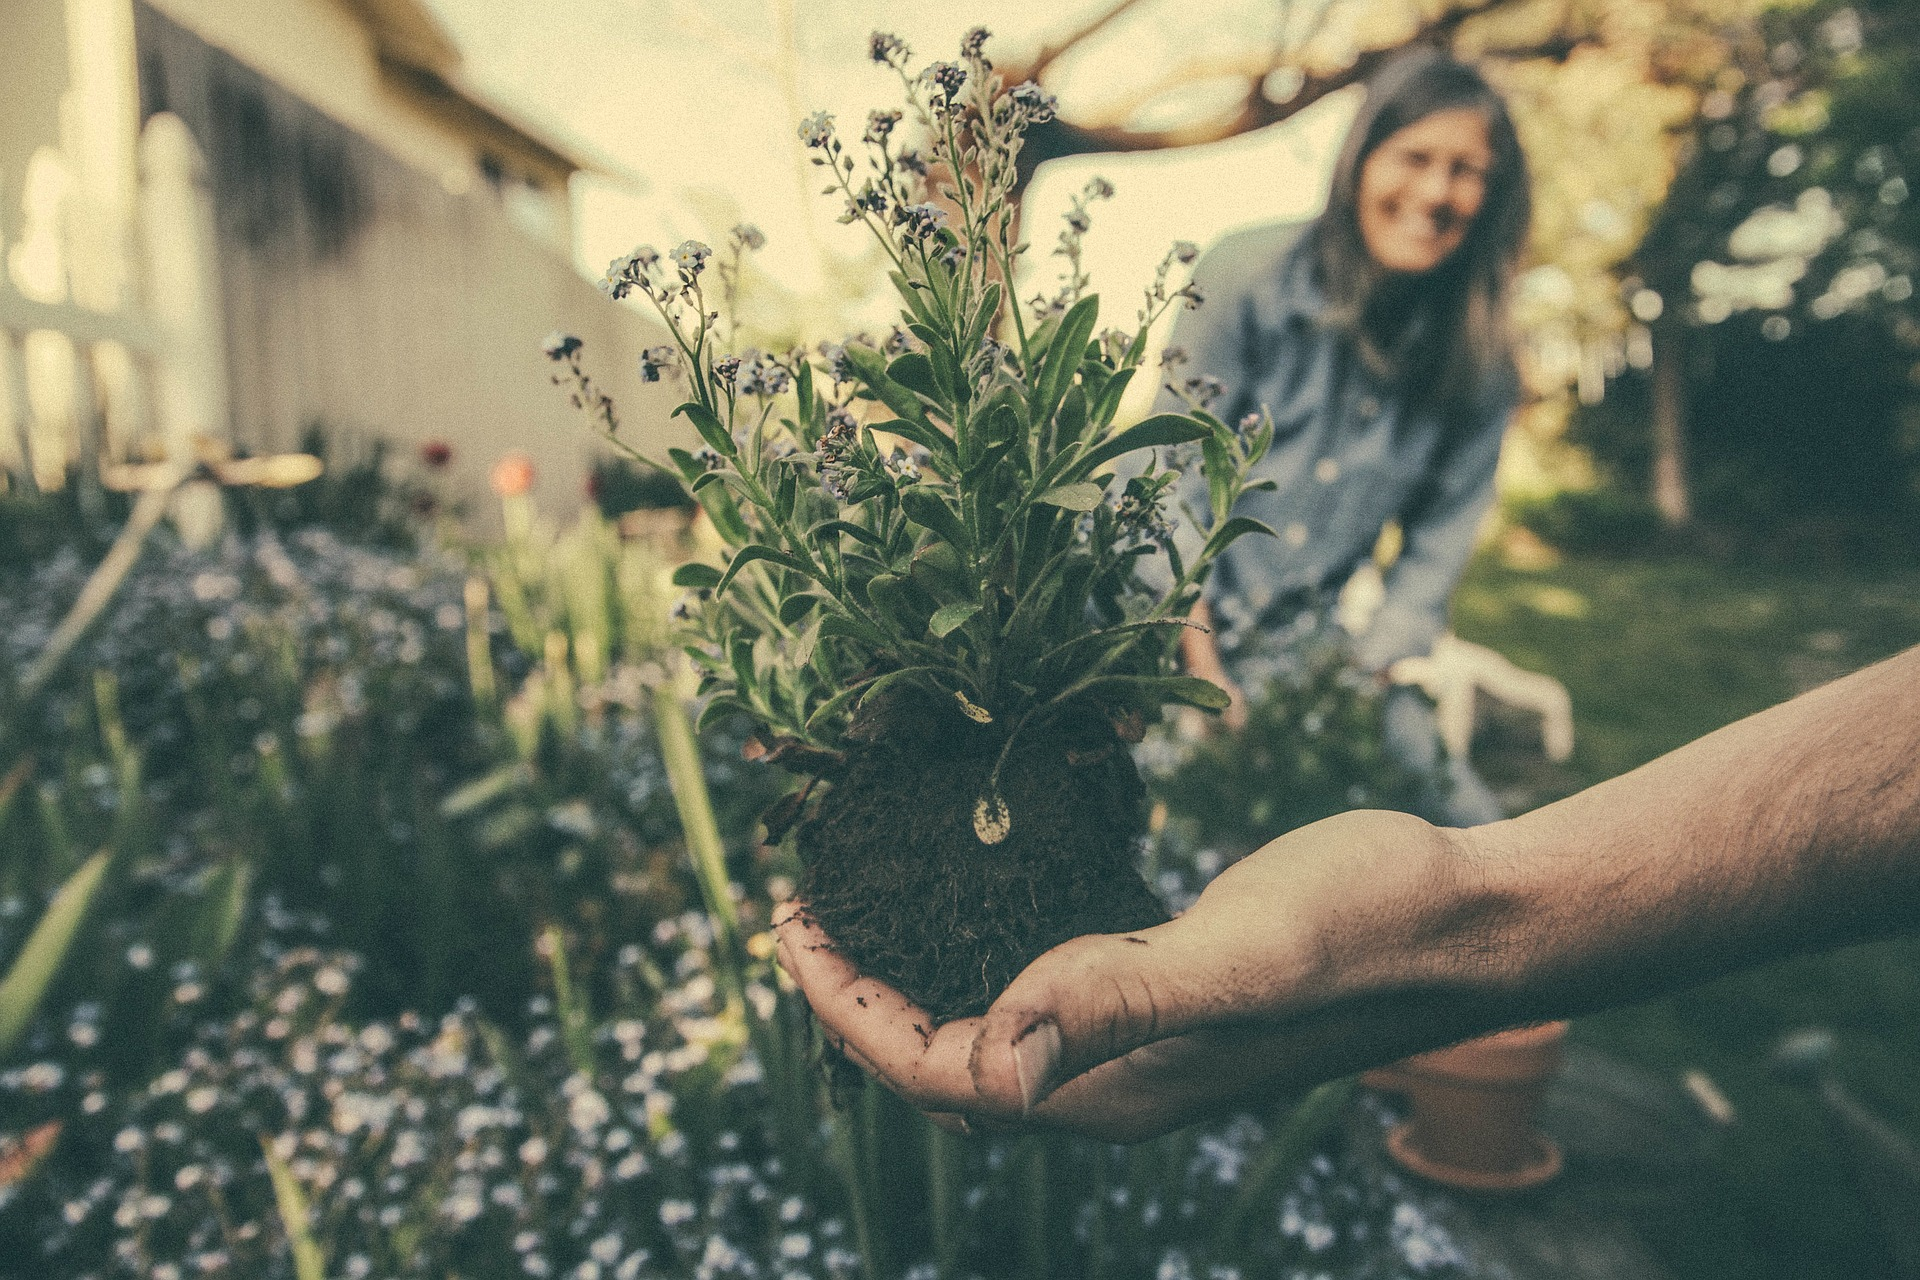 Environmentally-conscious plant lovers  who want to enhance the earth - not pollute it.